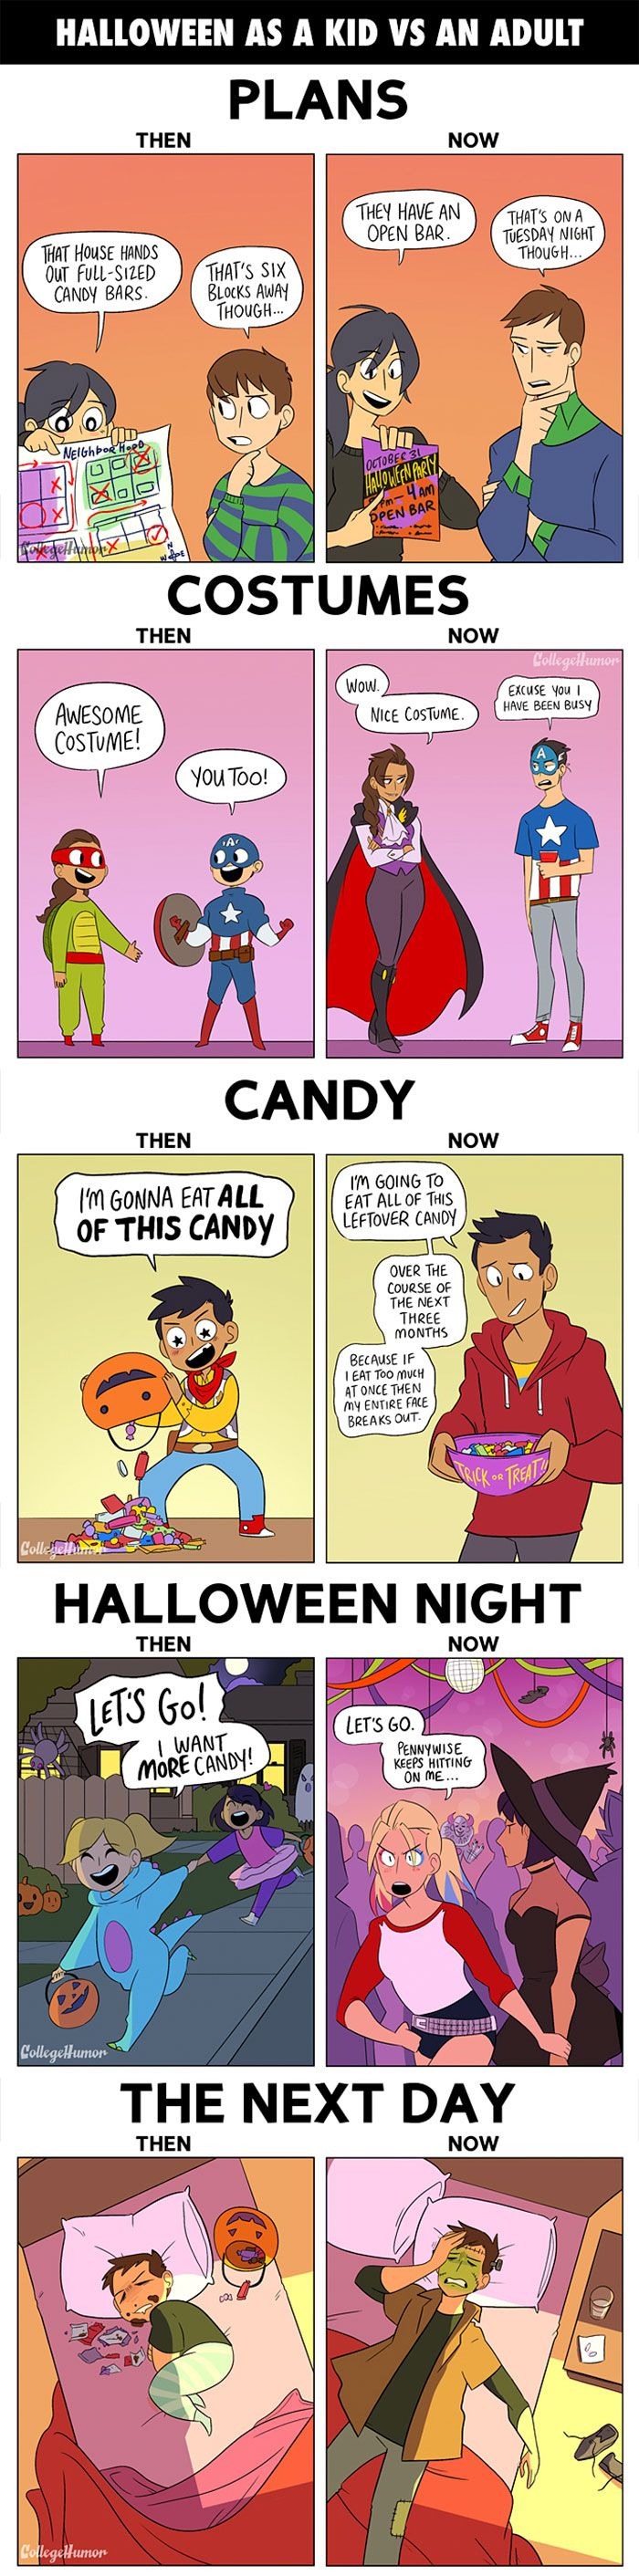 95 Funny Halloween Comics To Celebrate This Day With